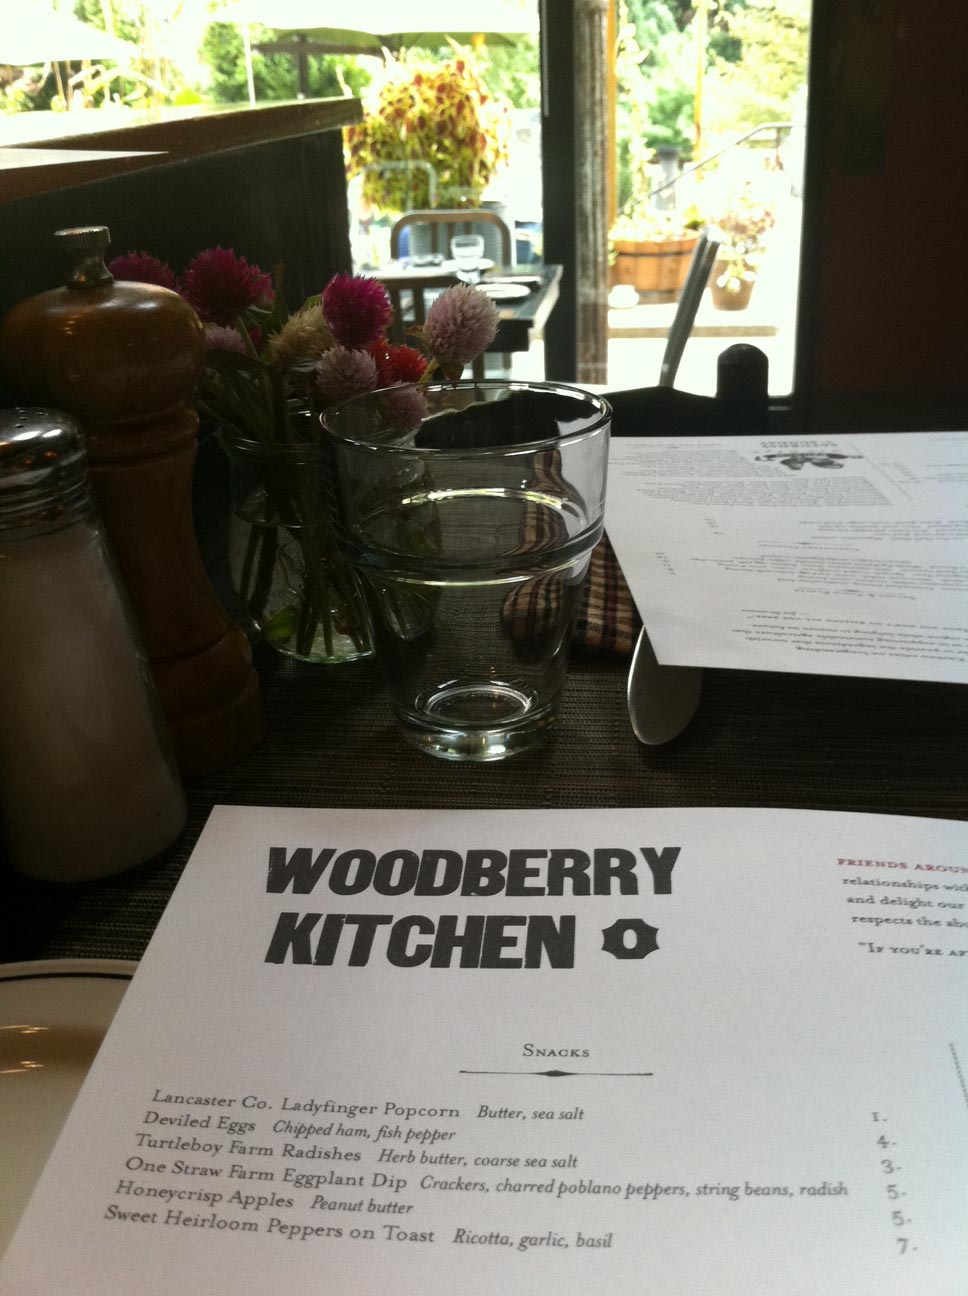 Woodberry Kitchen Restaurant Poetry